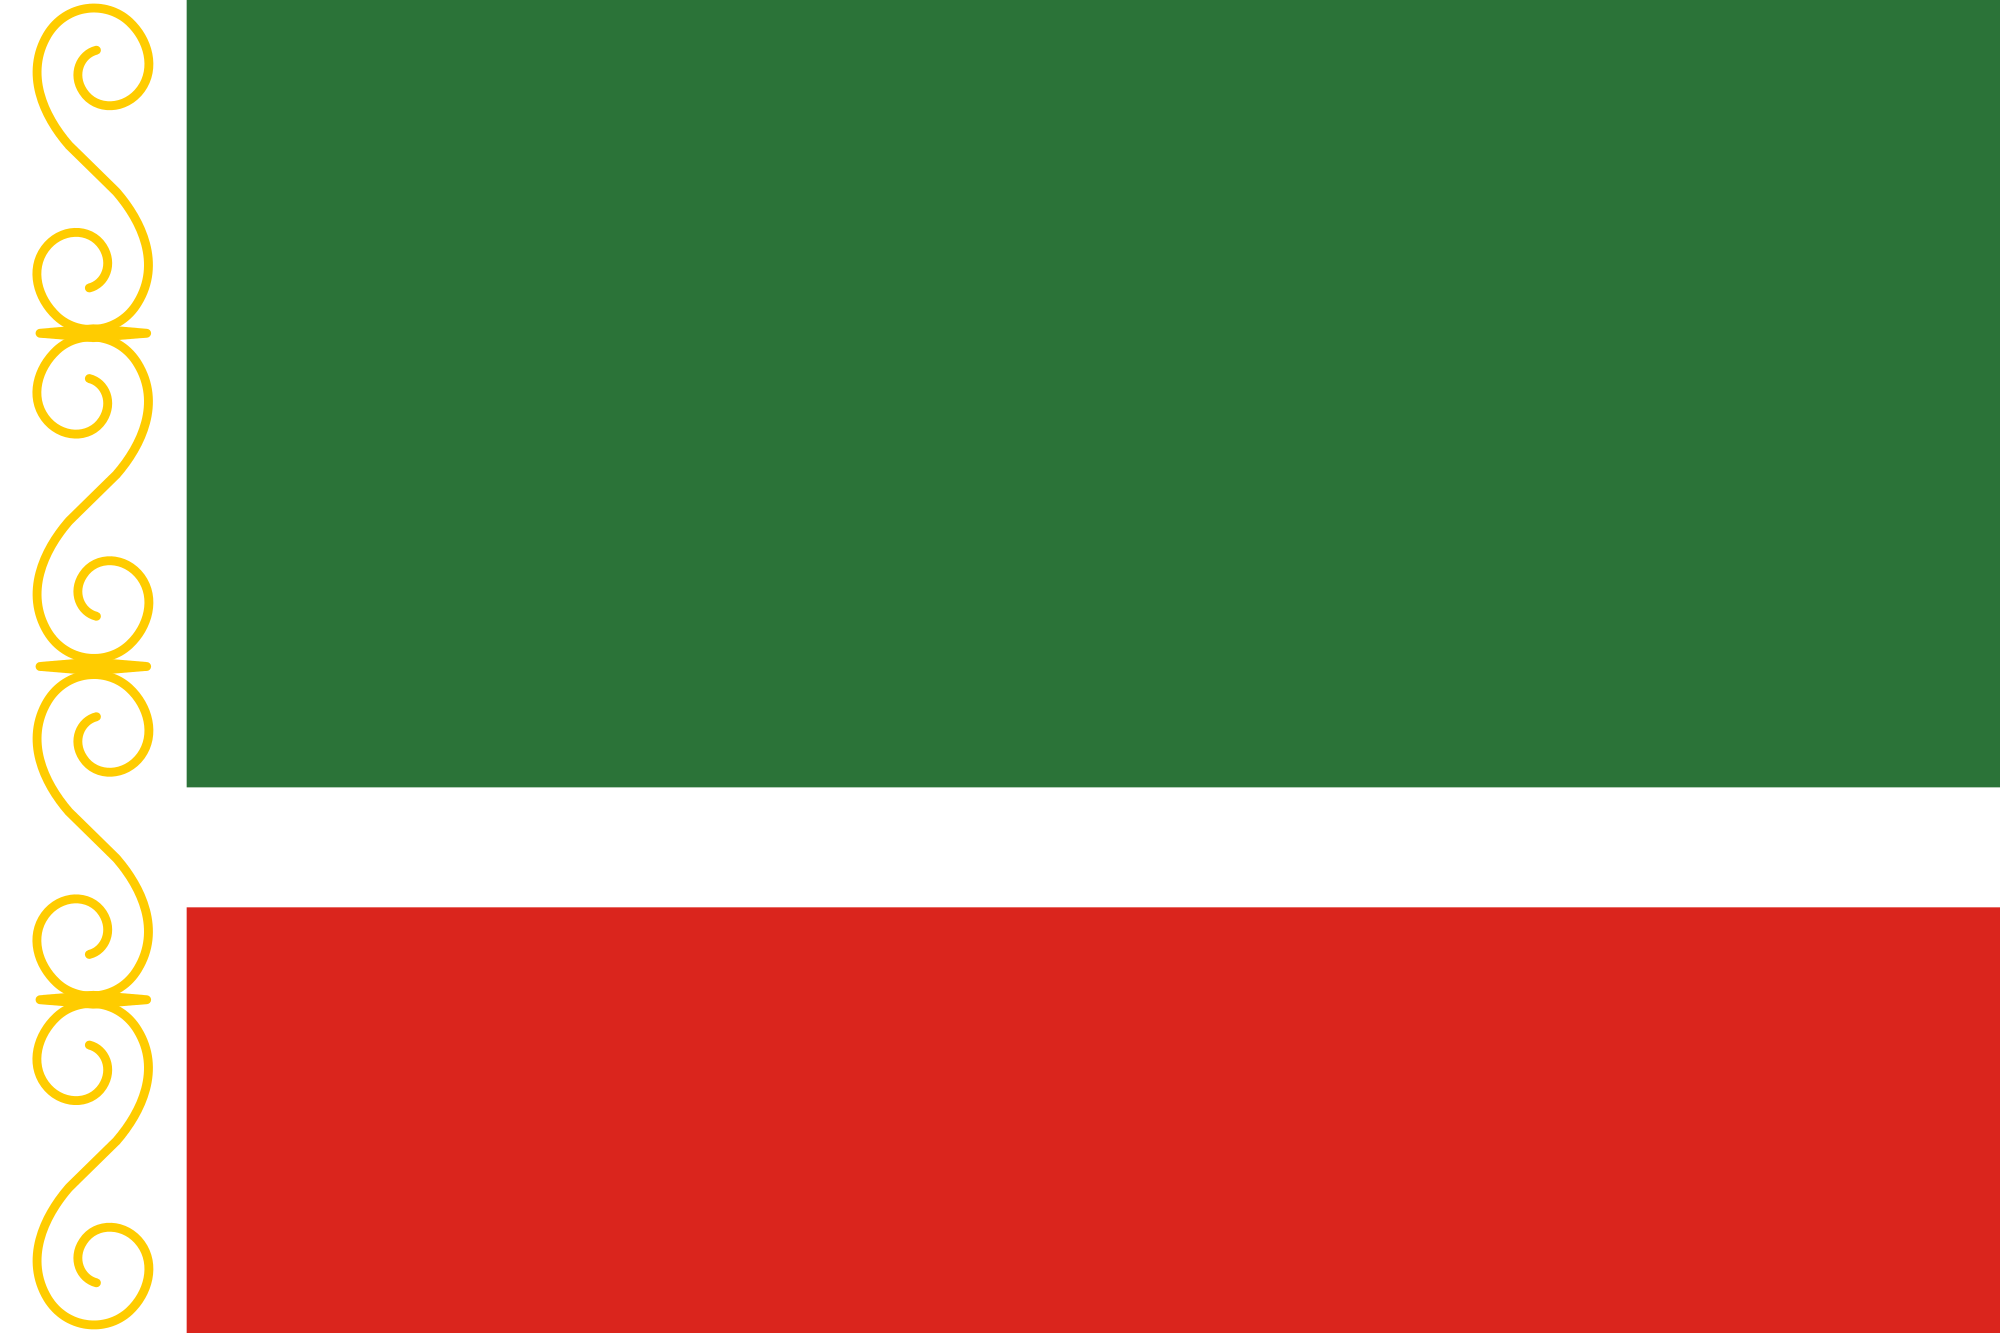 Republic of Chechnya